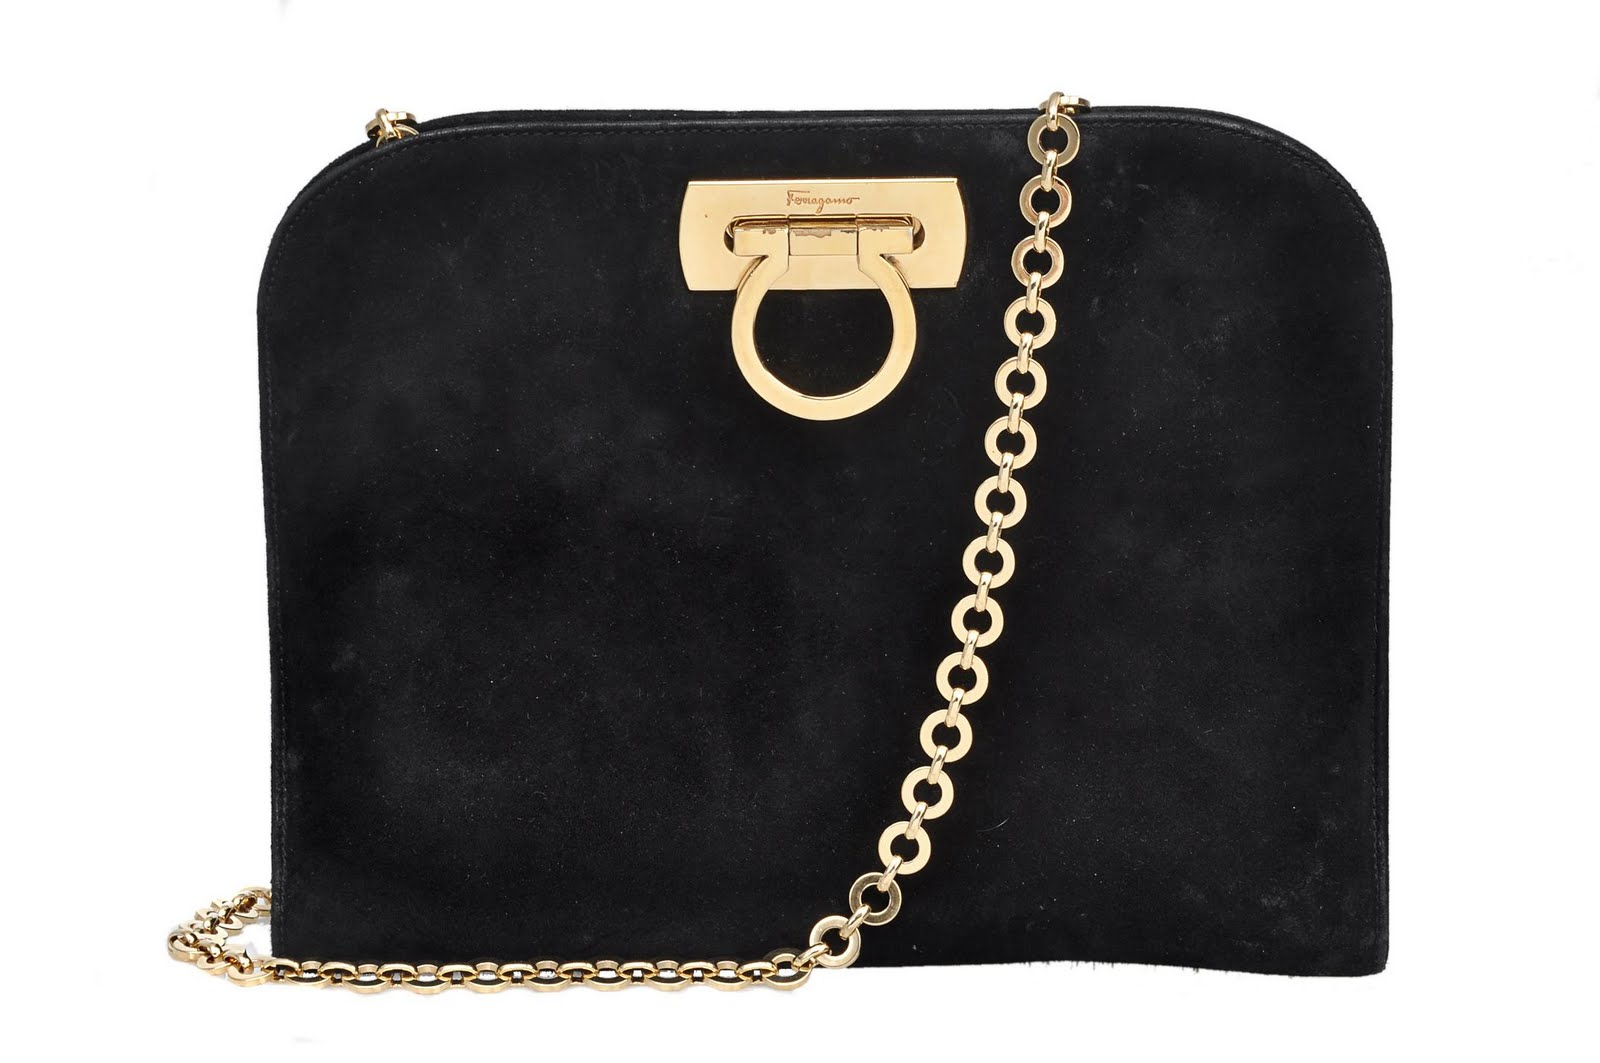 Salvatore Ferragamo Black Suede Gold Hardware Clutch Shoulder Bag 4h62e